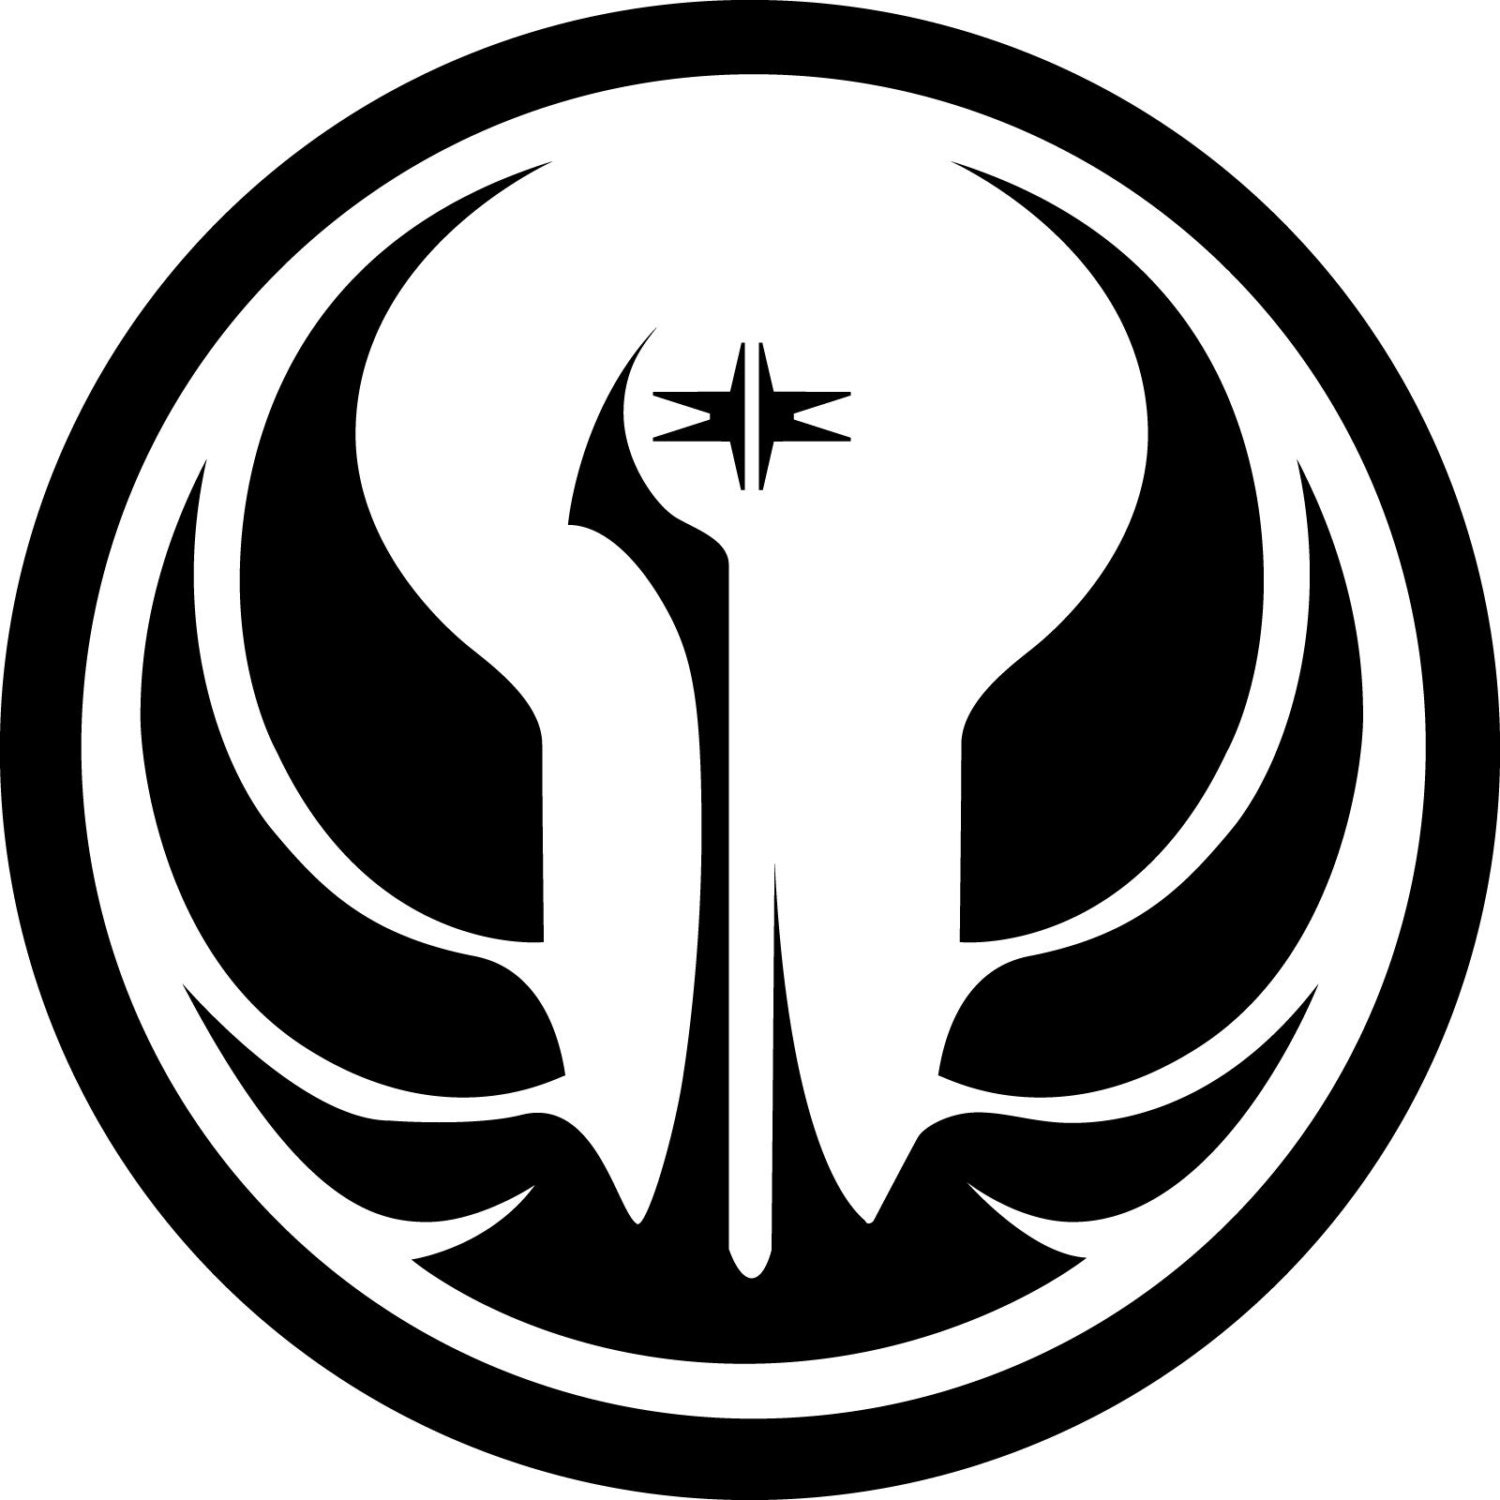 Star wars old republic jedi order logo vinyl sticker window request a custom order and have something made just for you biocorpaavc